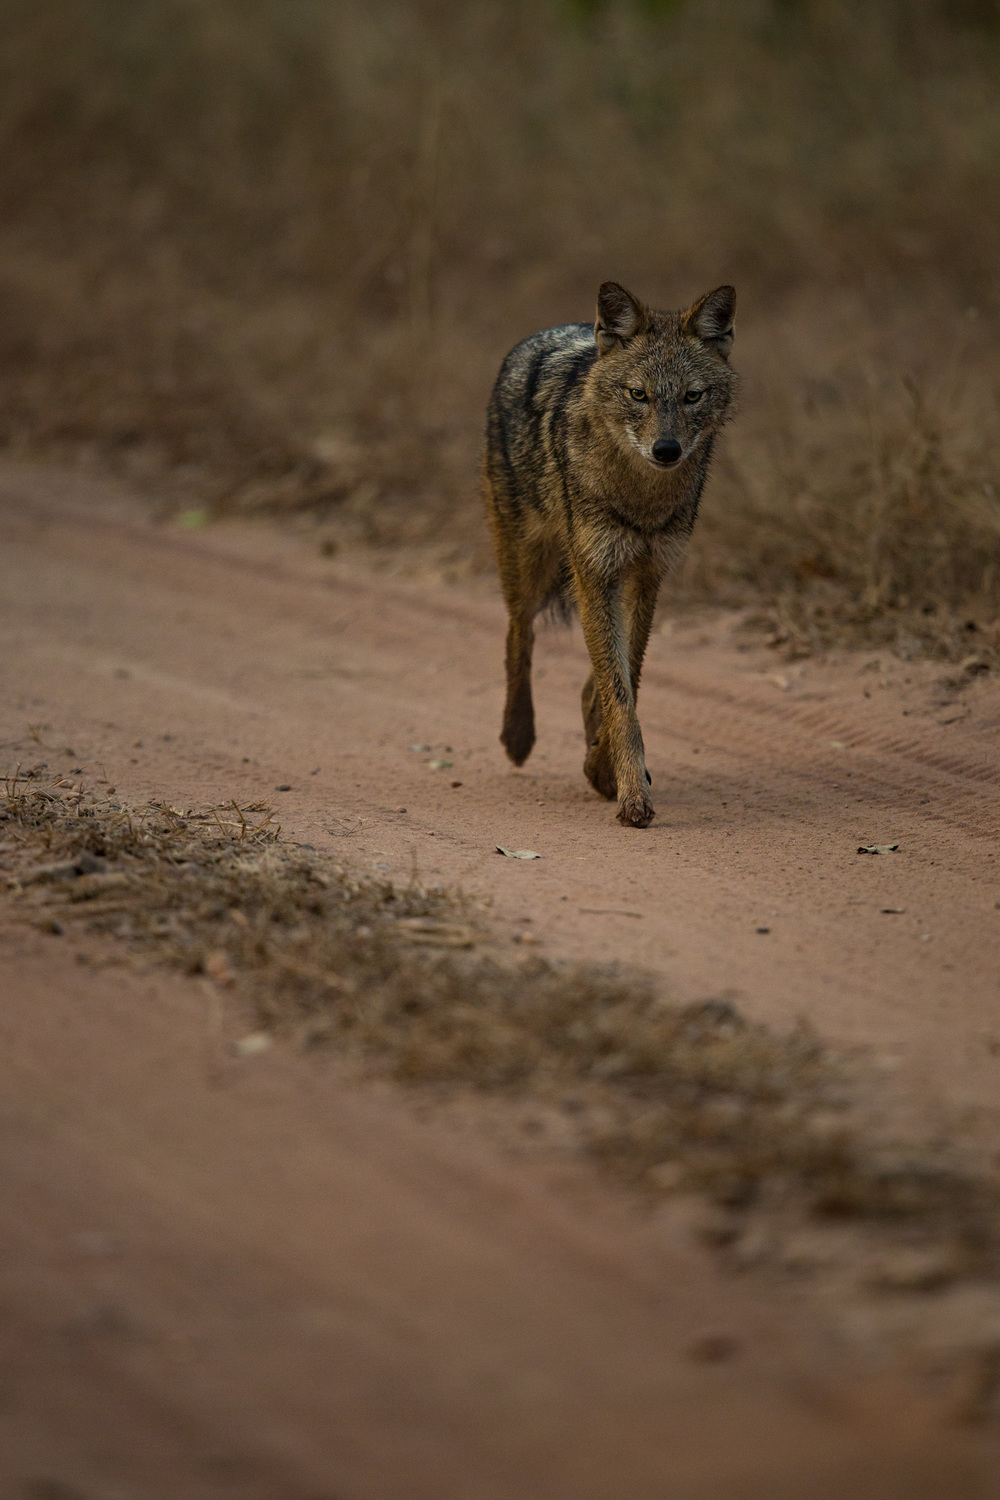 Golden jackal (Canis aureus).   CLICK IMAGE for full screen.